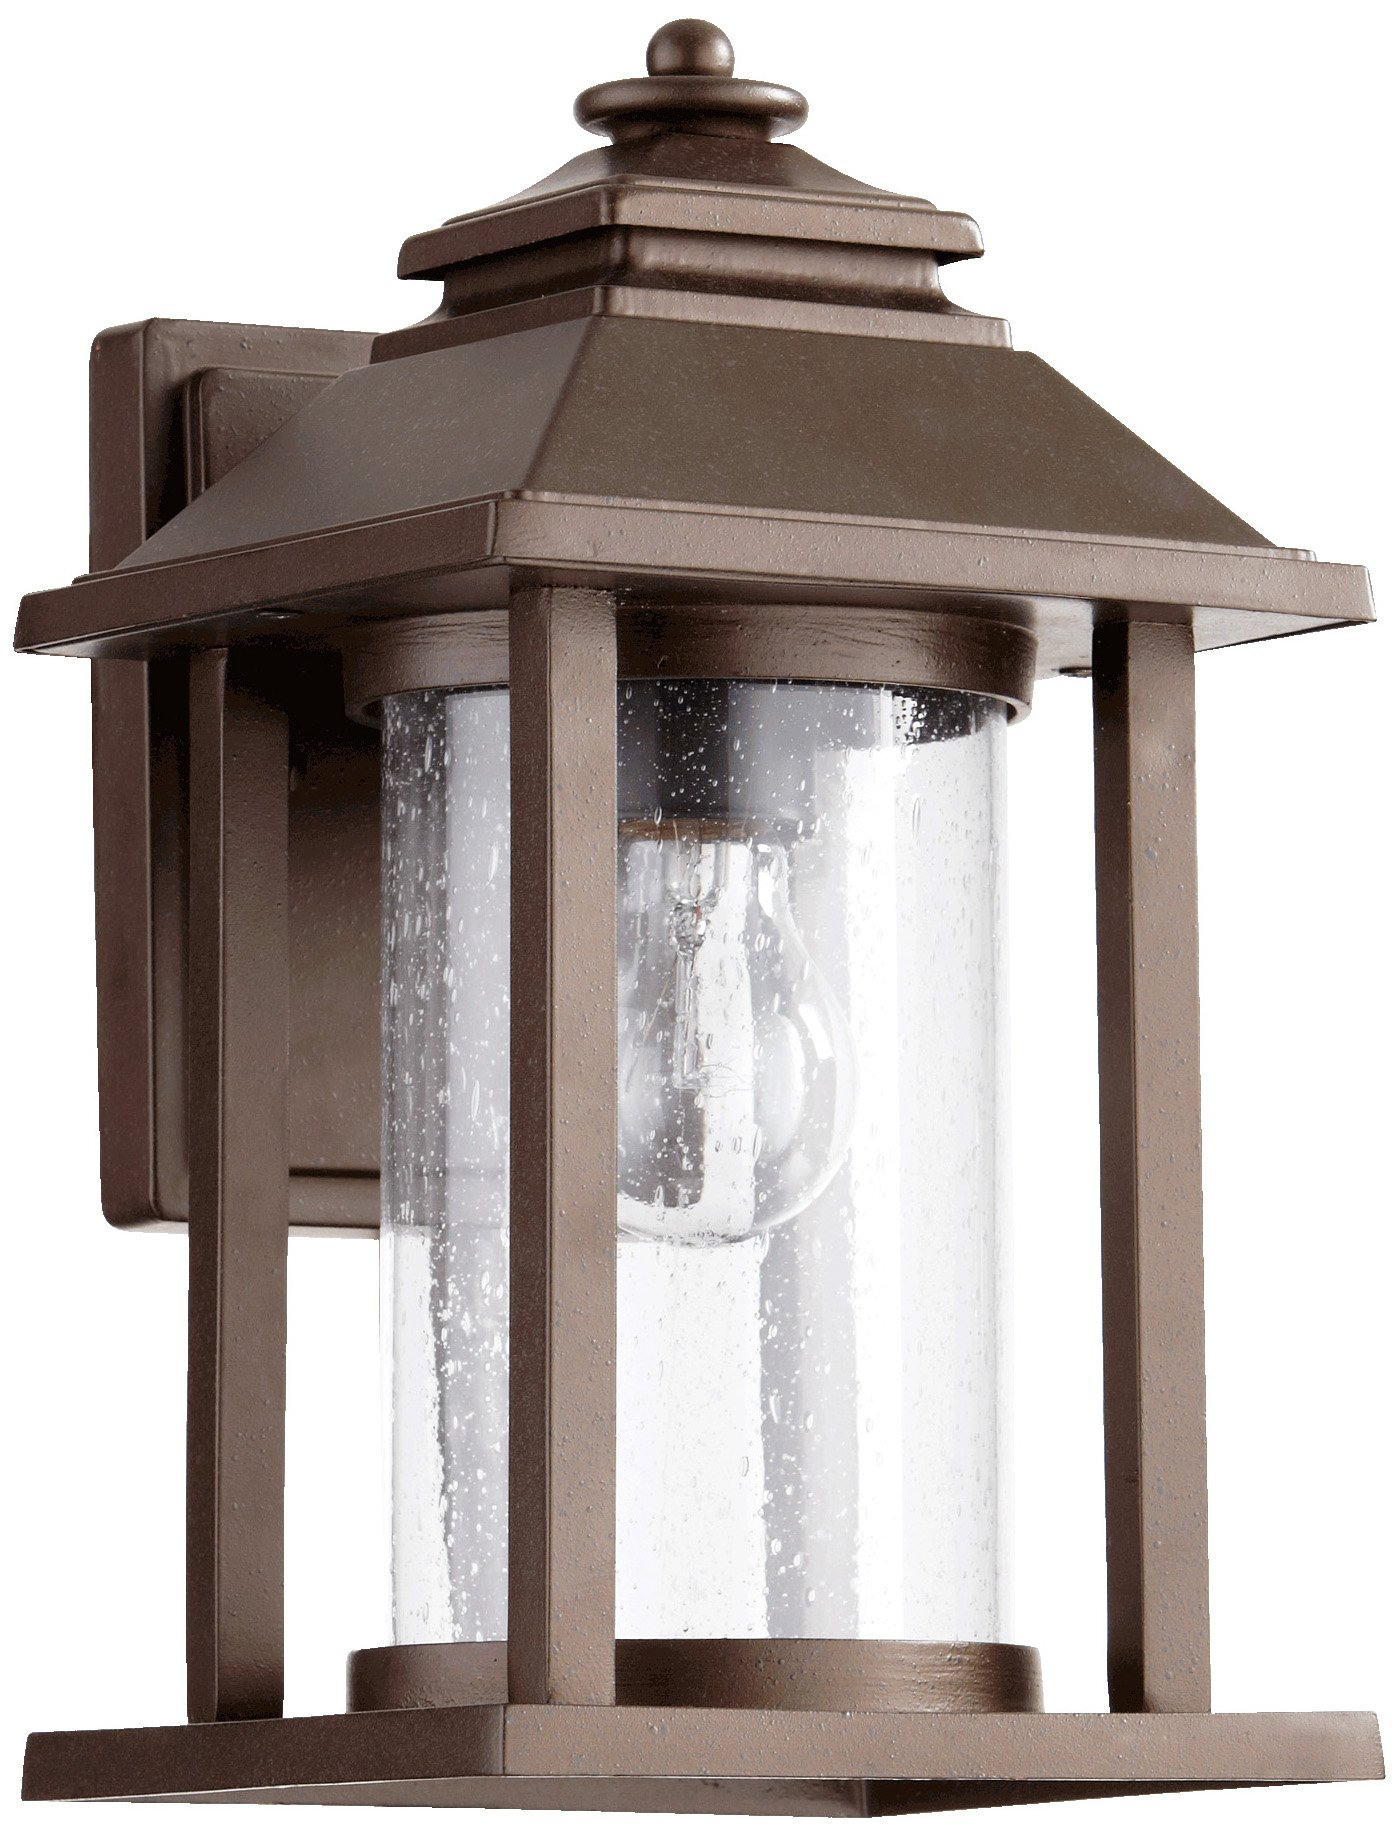 Quorum International 7271-86 Crusoe Lantern, 7'', Oiled Bronze